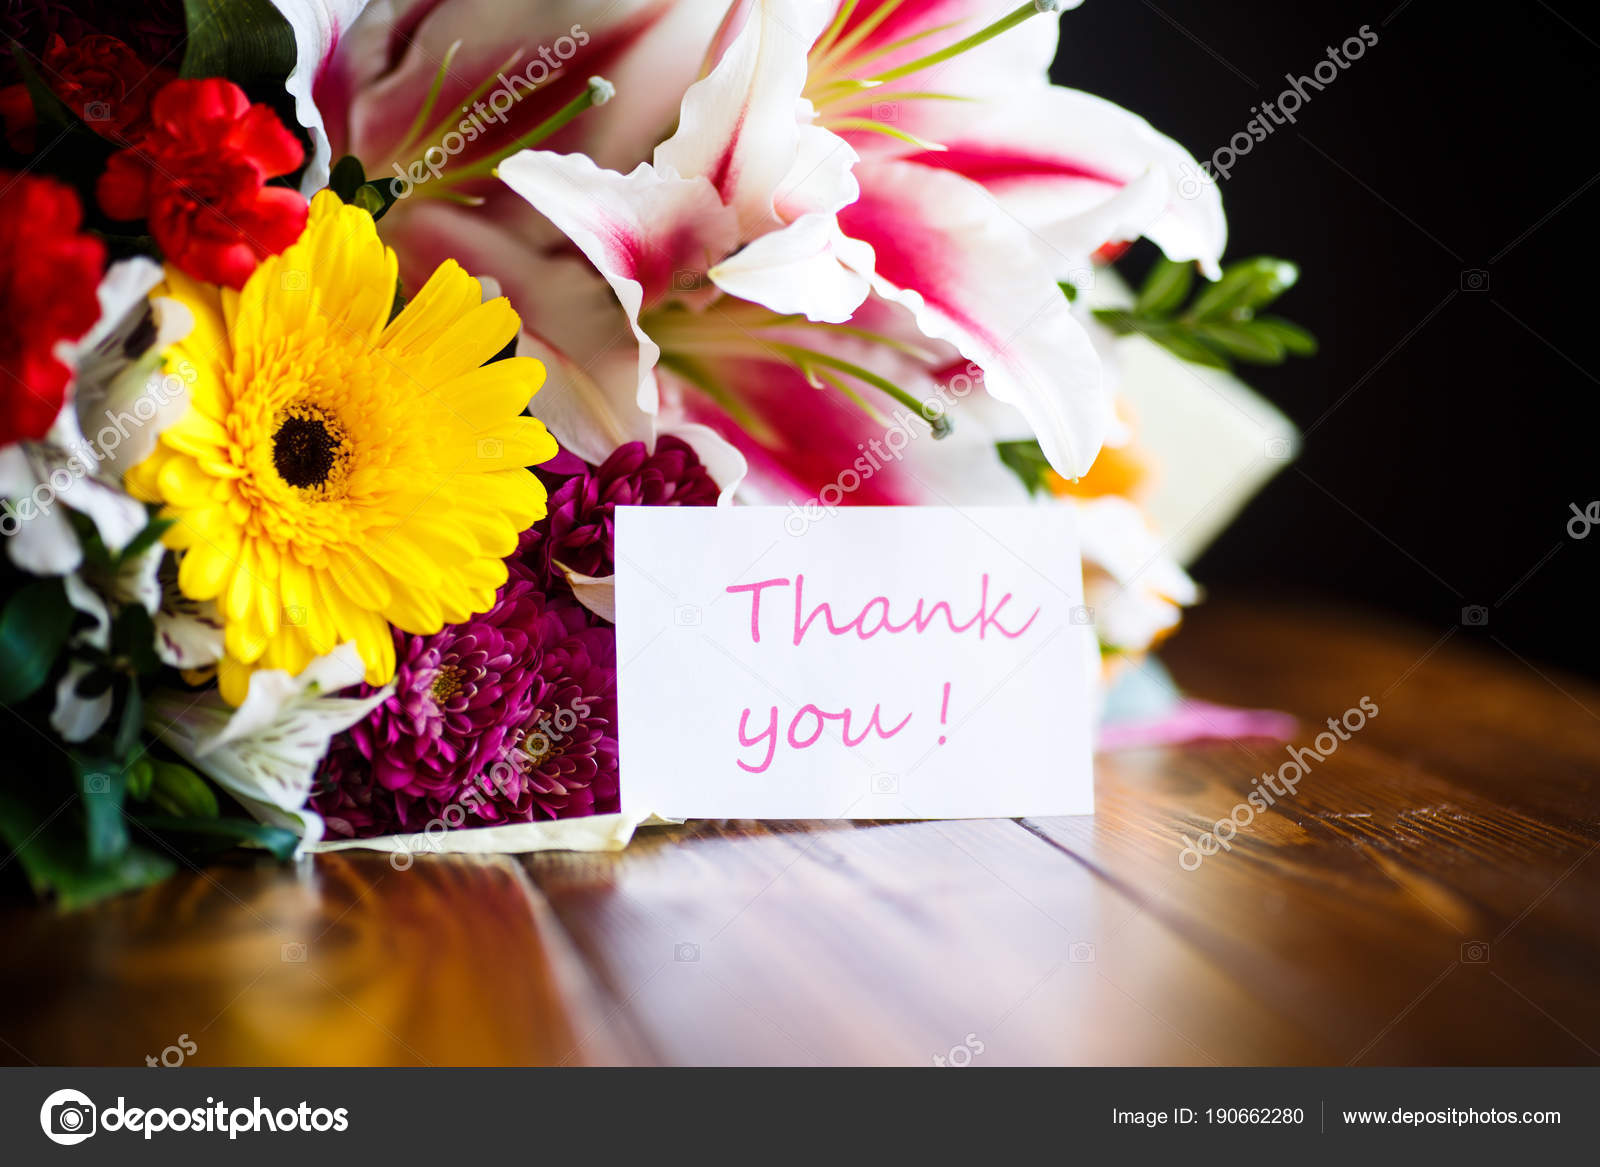 Beautiful bouquet of different flowers stock photo rawlik 190662280 beautiful bouquet of different flowers on a wooden table photo by rawlik izmirmasajfo